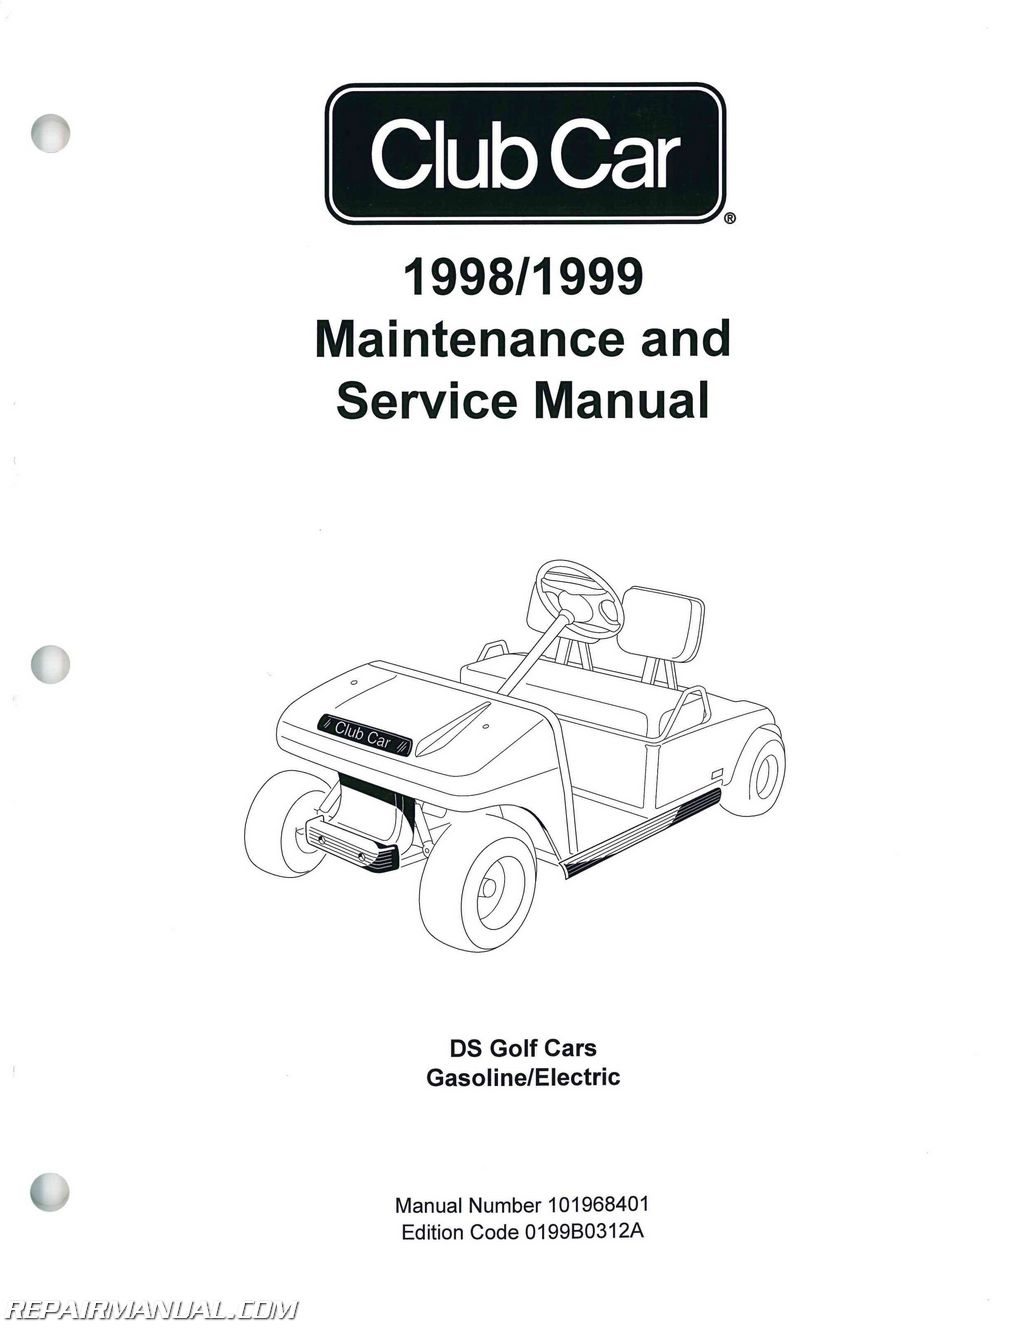 1998 1999 Club Car DS Golf Car Service Manual club car golf cart manuals repair manuals online club car turf 2 wiring diagram gas at gsmx.co